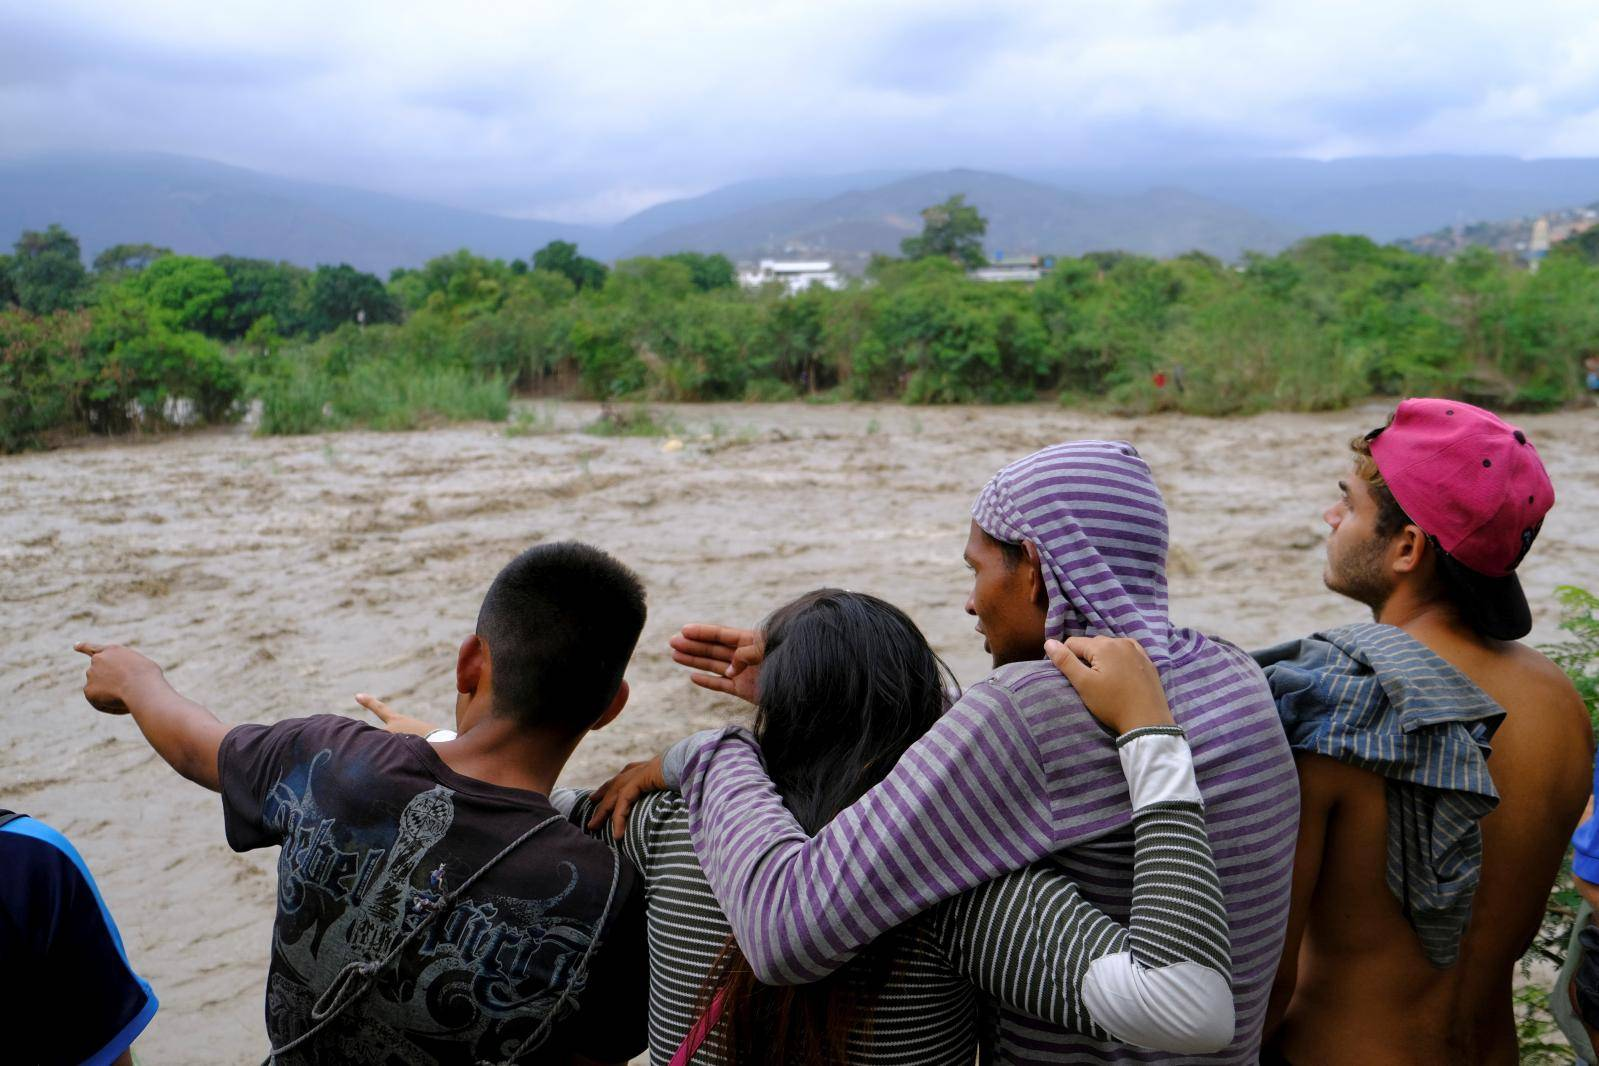 People look towards the Tachira River on the border between Colombia and Venezuela, in Cucuta